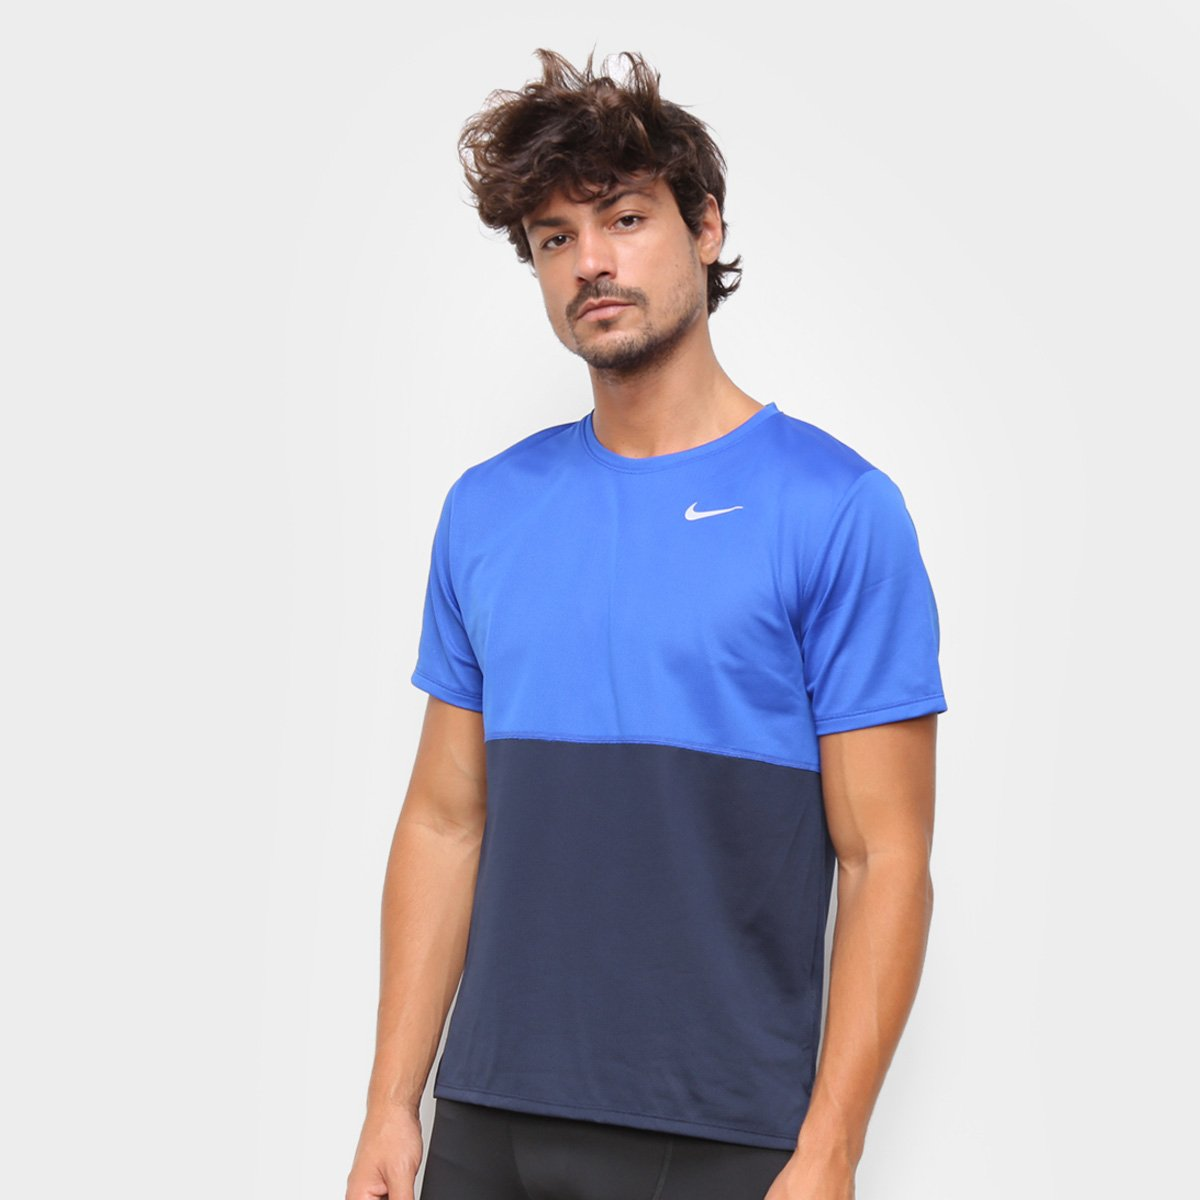 Por el contrario desmayarse Posible  Camiseta Nike Dri-Fit Breathe Run Masculina - Azul Royal e Preto | Allianz  Parque Shop